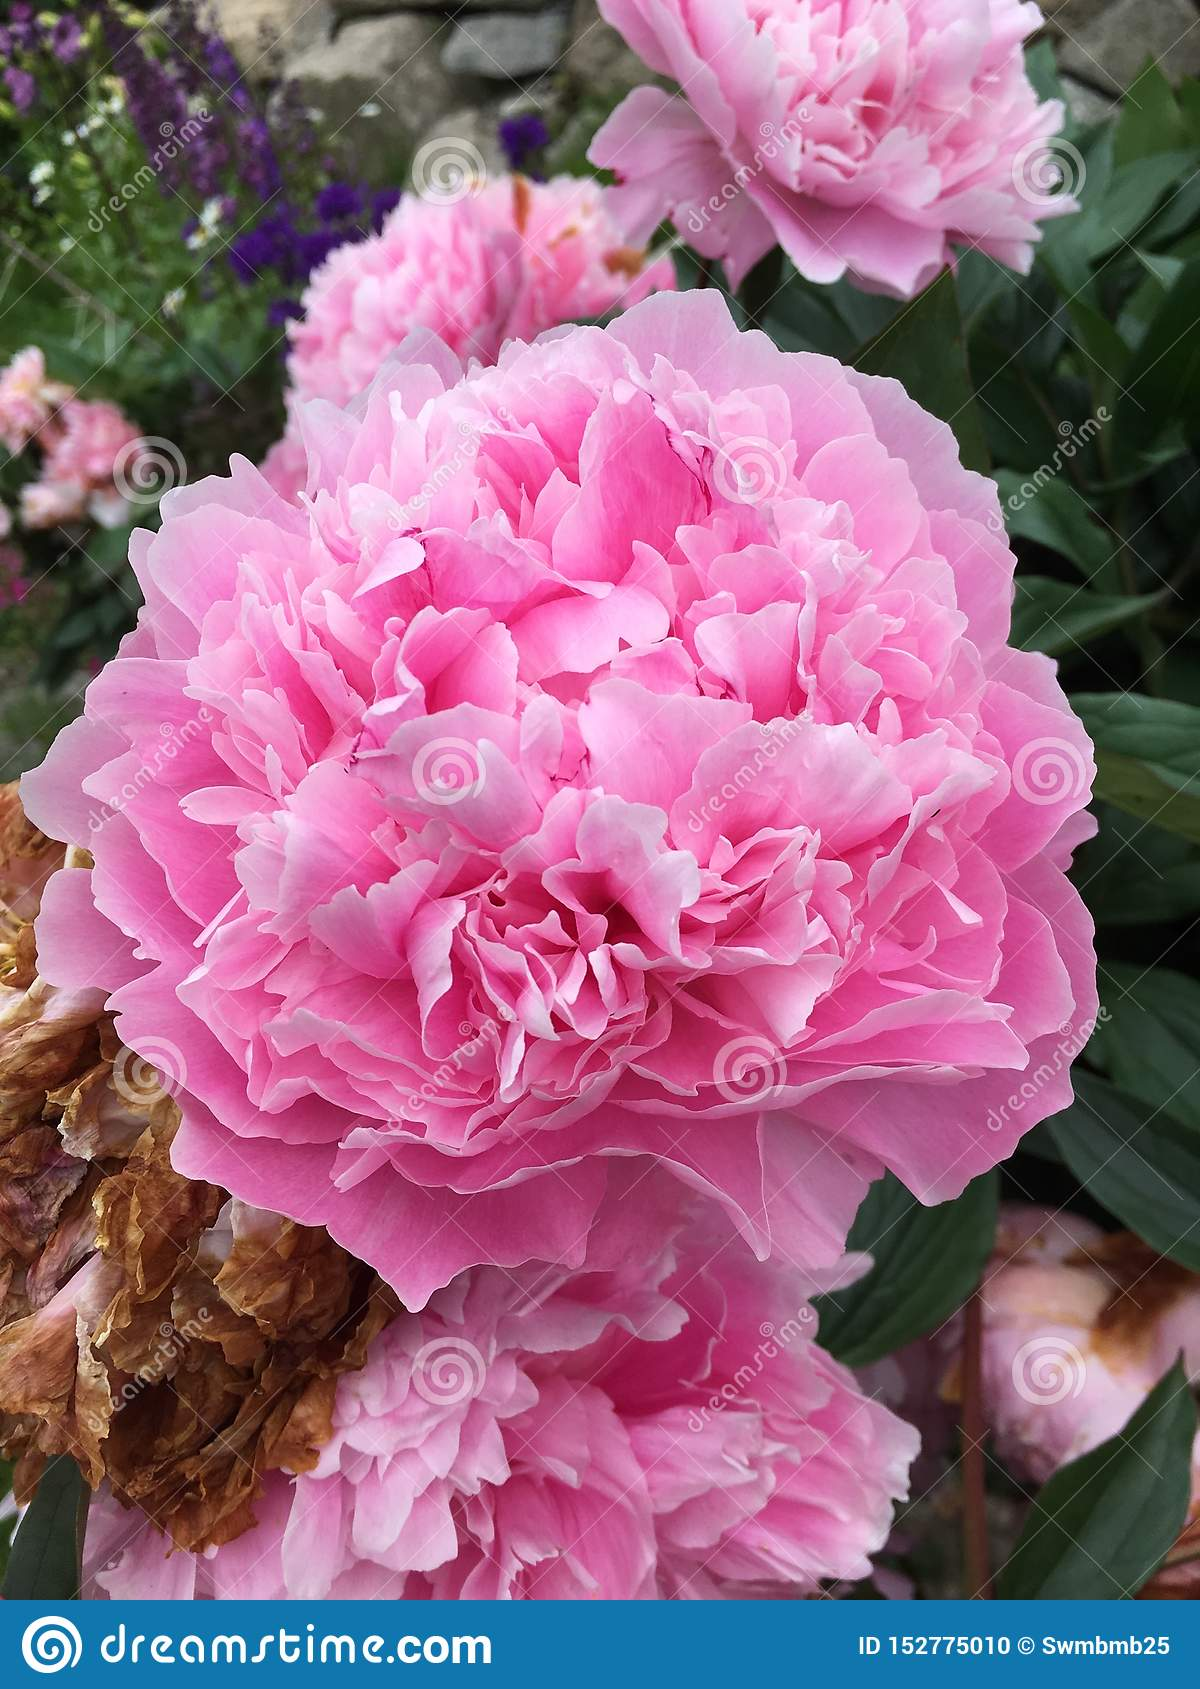 Peek-a-Boo cotton candy pink peonies